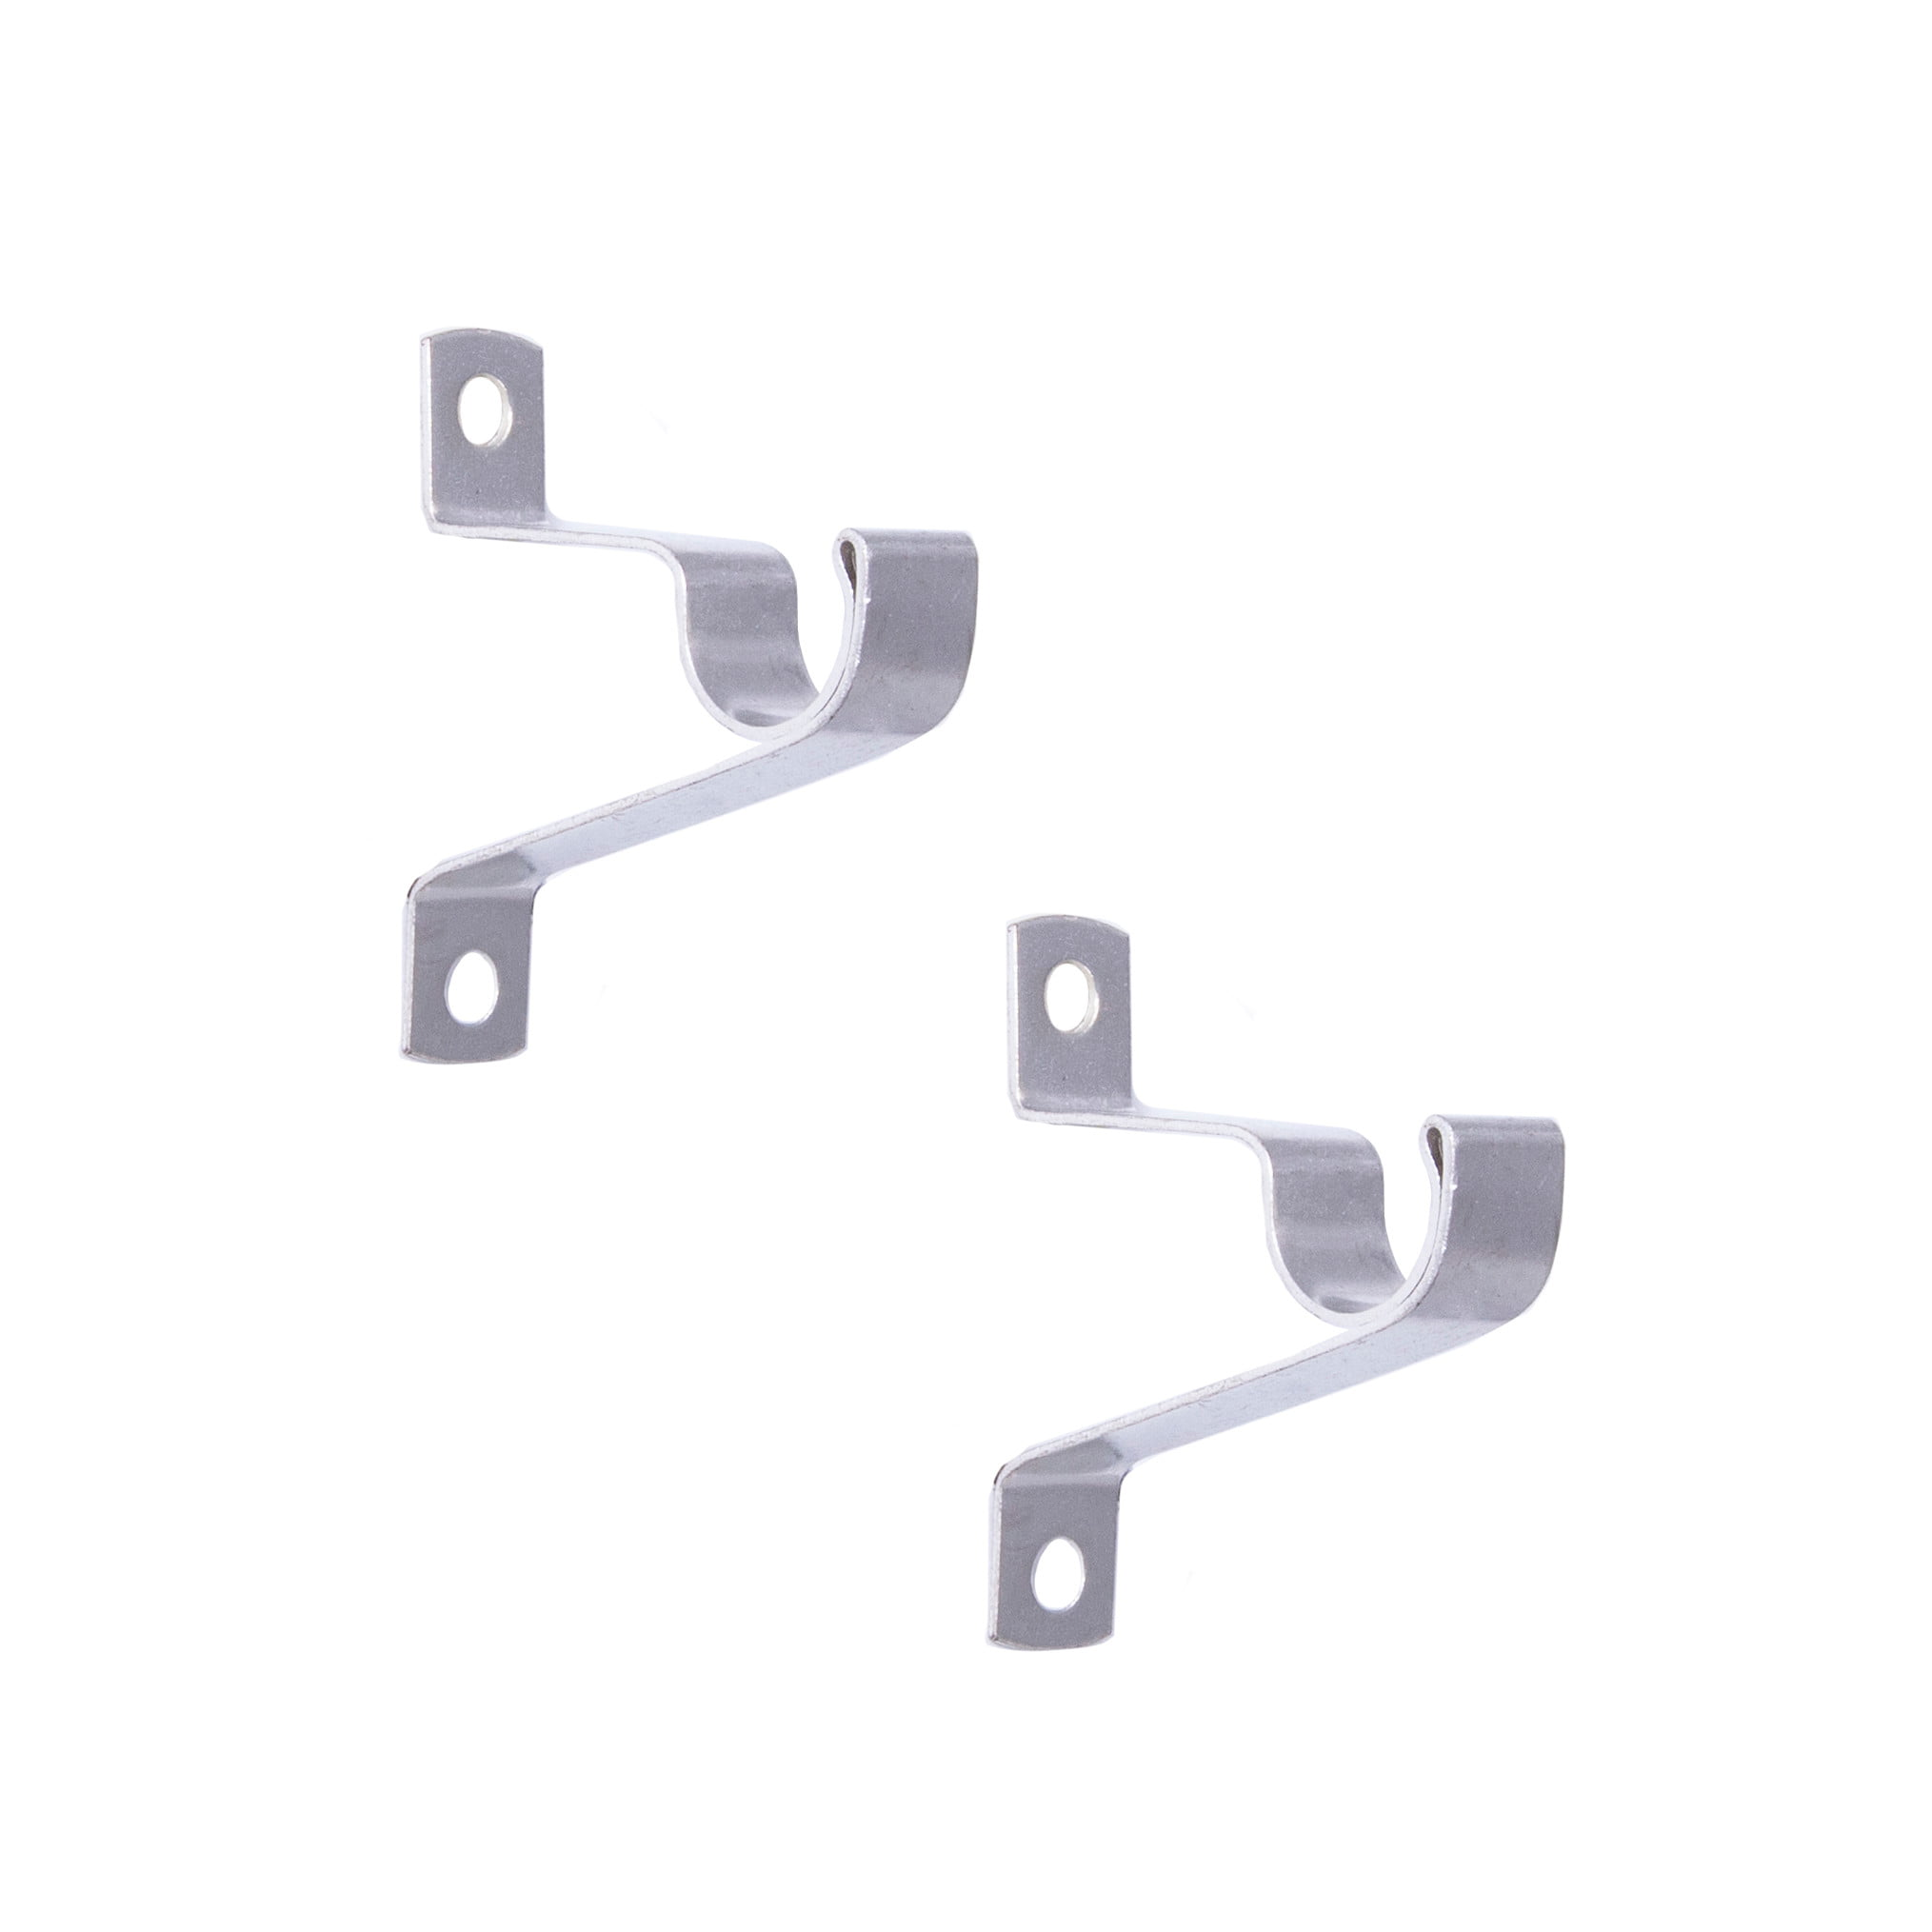 16 Cafe Curtain Rod Brackets Set